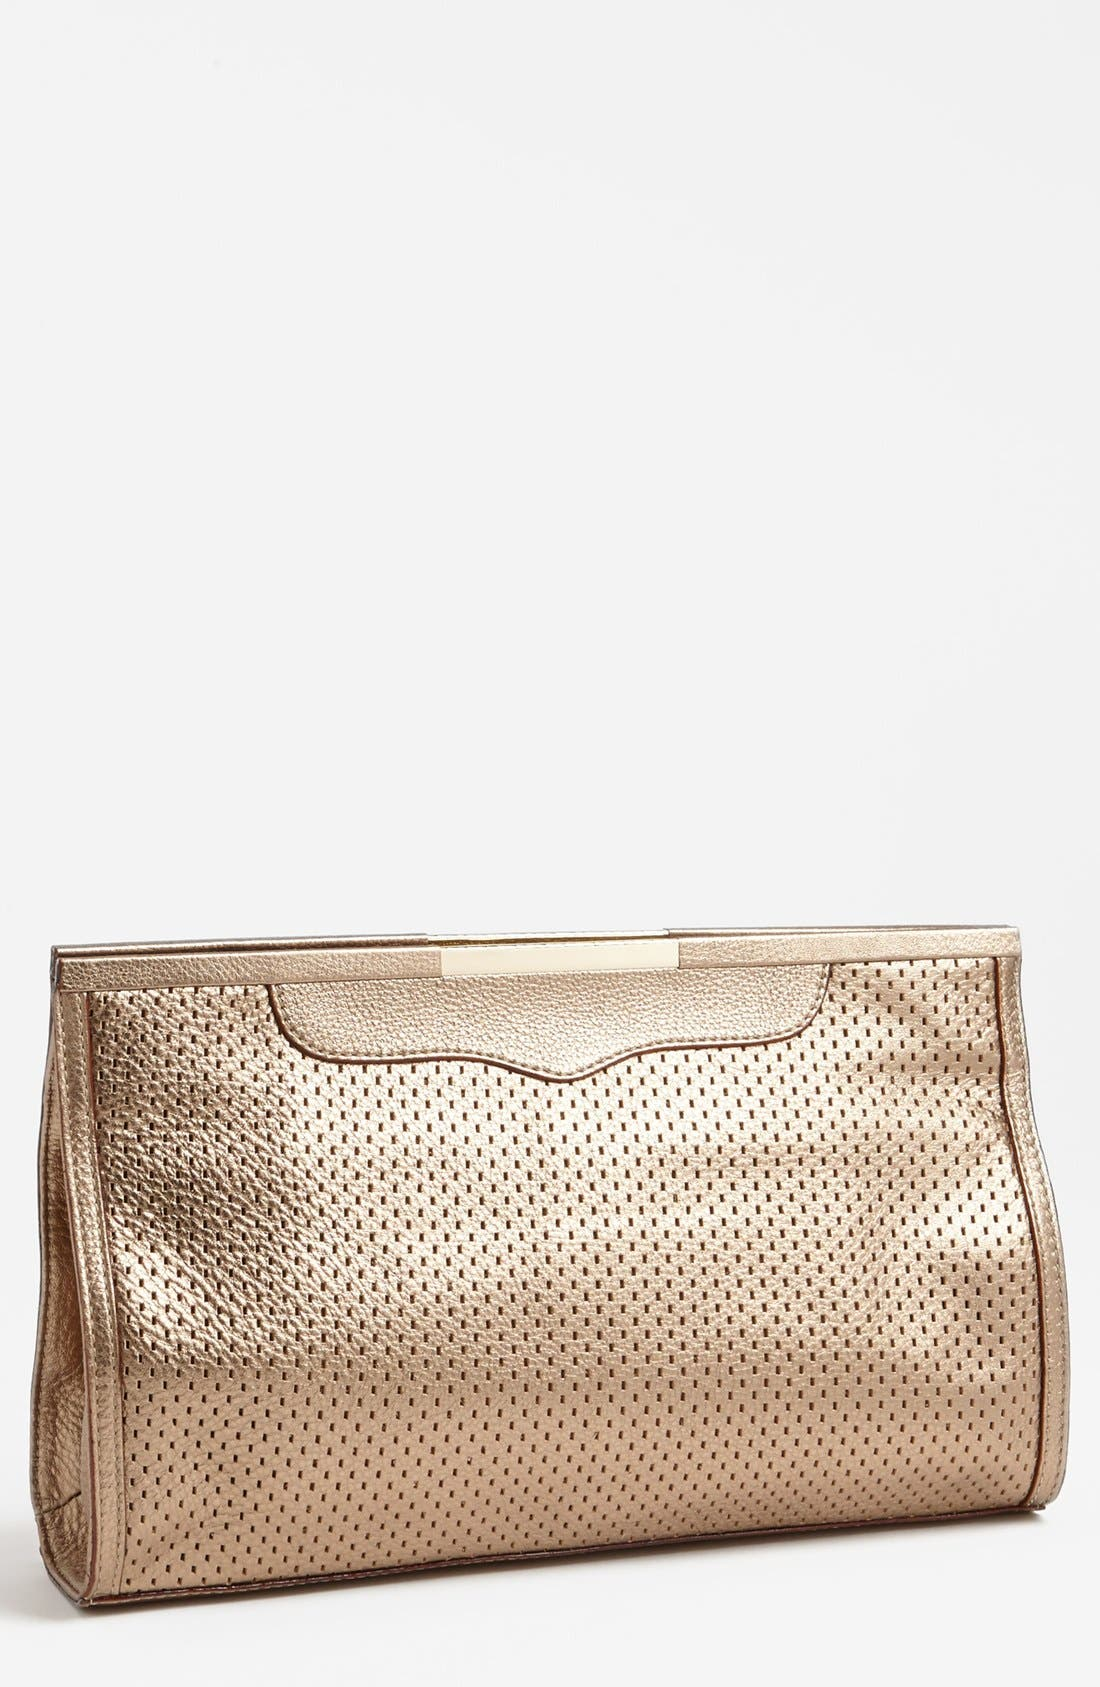 Alternate Image 1 Selected - Rebecca Minkoff 'Honey Bunch' Clutch